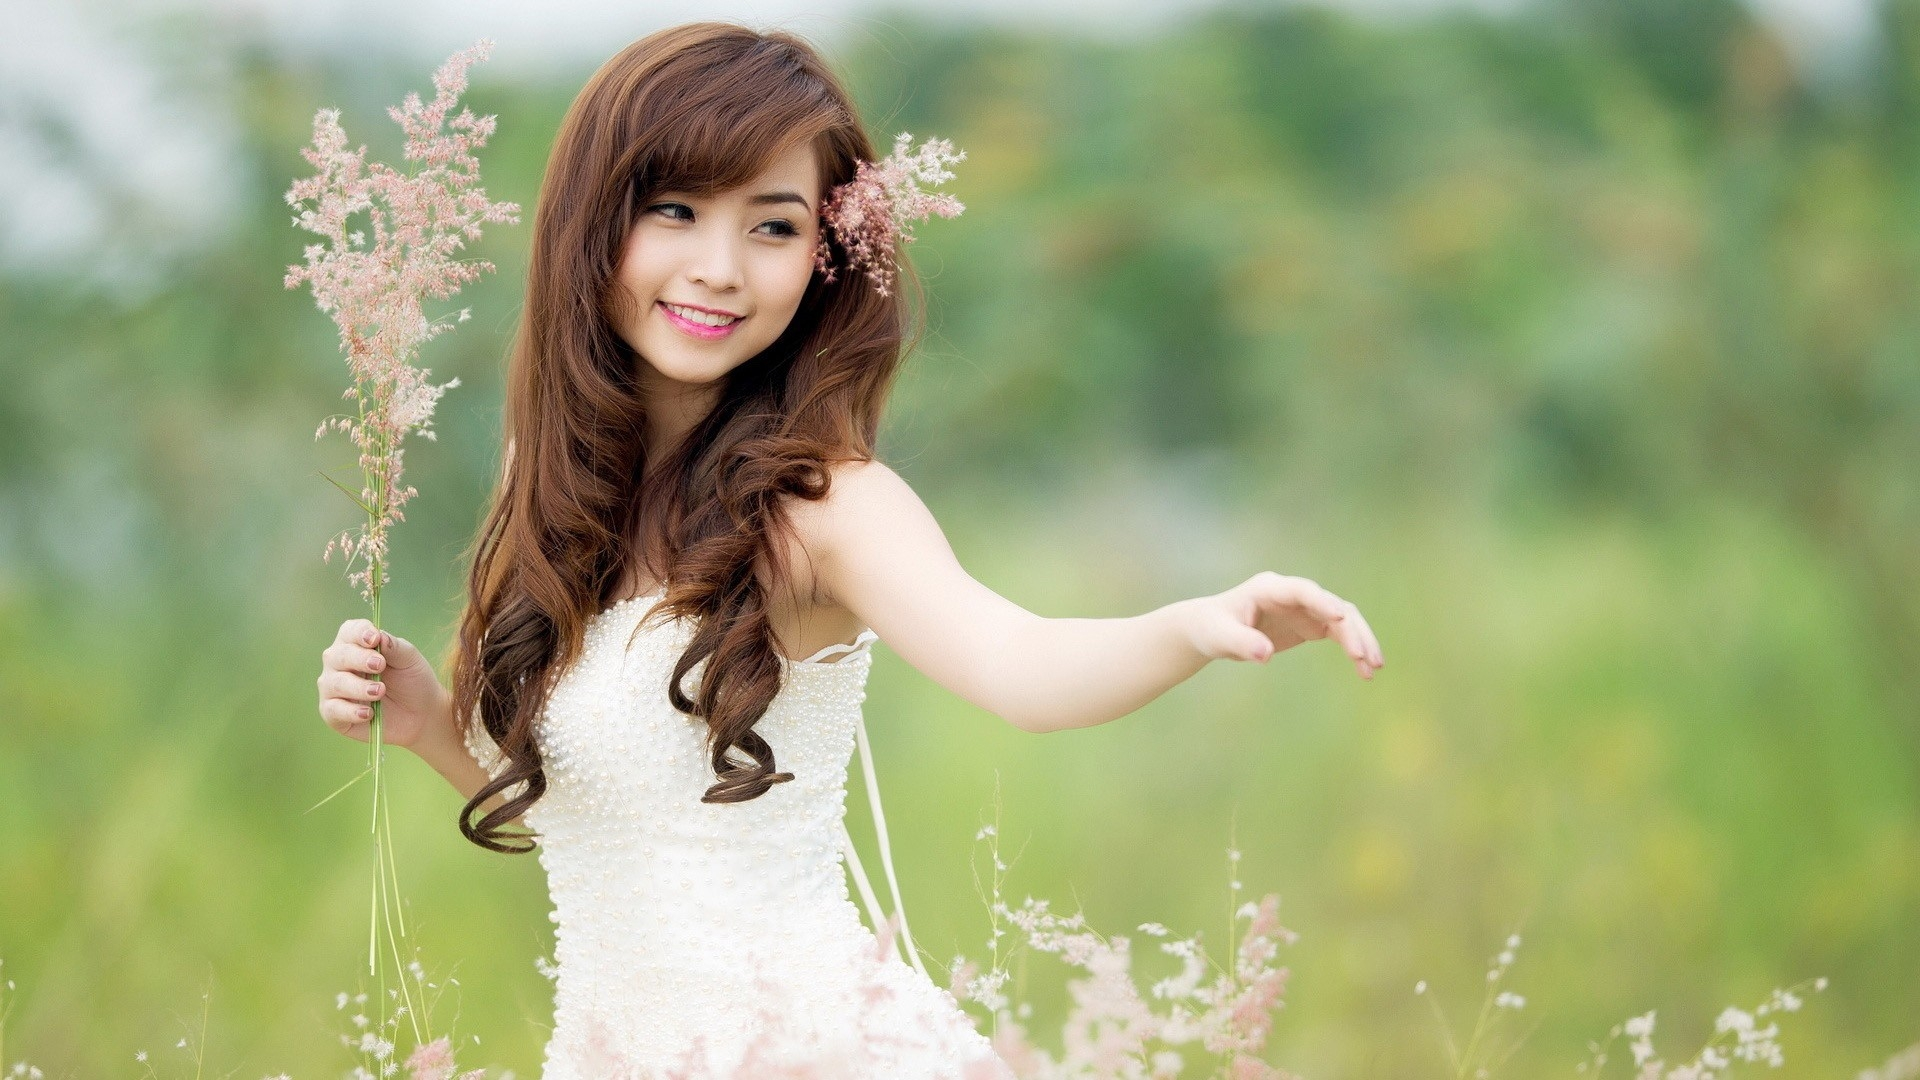 71 asian girl wallpaper Pictures